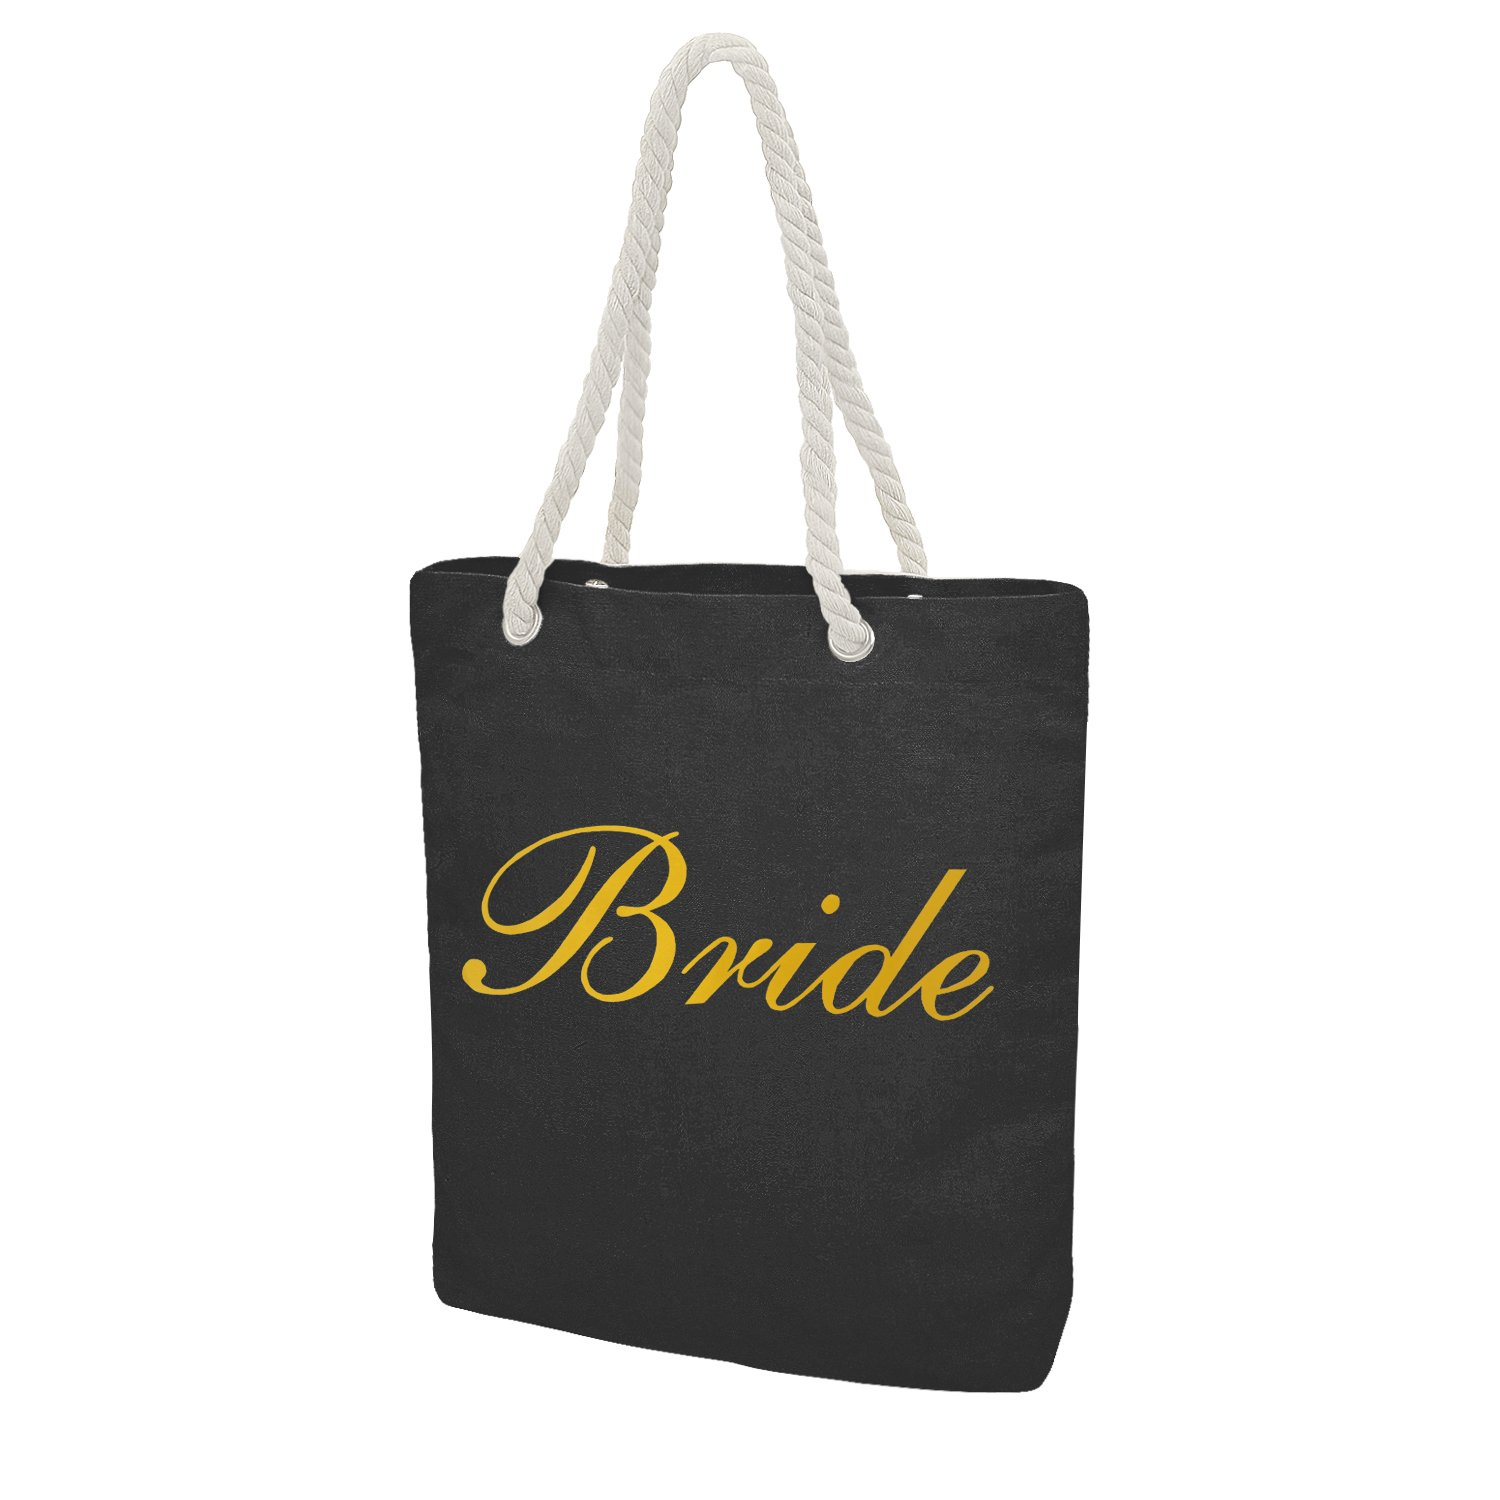 Personalised Tote Bag Bride Bridesmaid Maid of Honour Hen Gift Bridal Shower Bachelorette Party